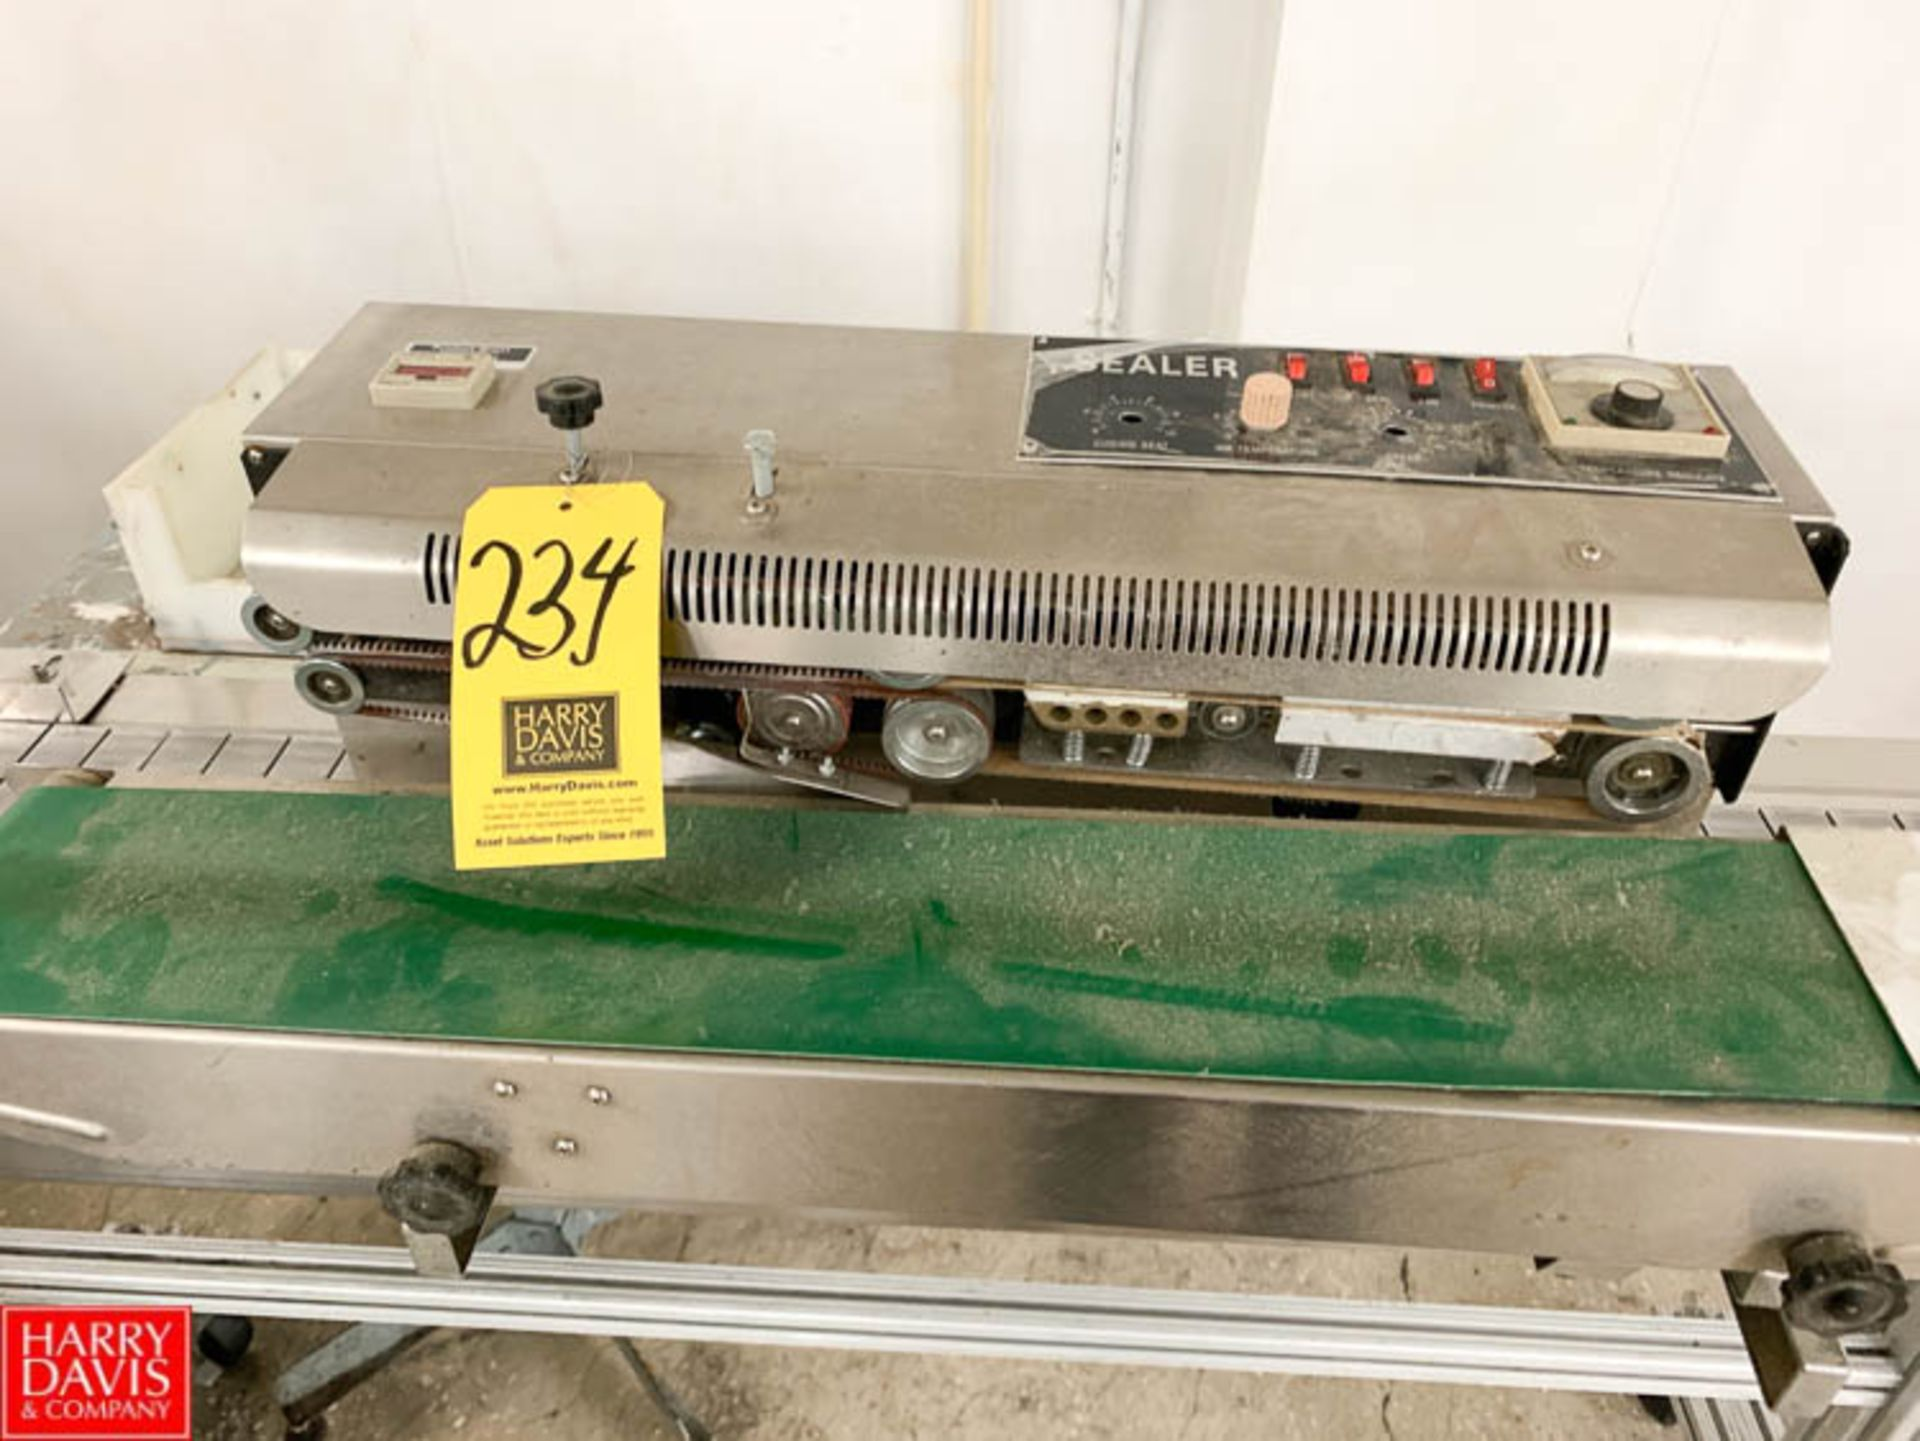 Lot 234 - S/S In Line Sealer Rigging Prices: 100